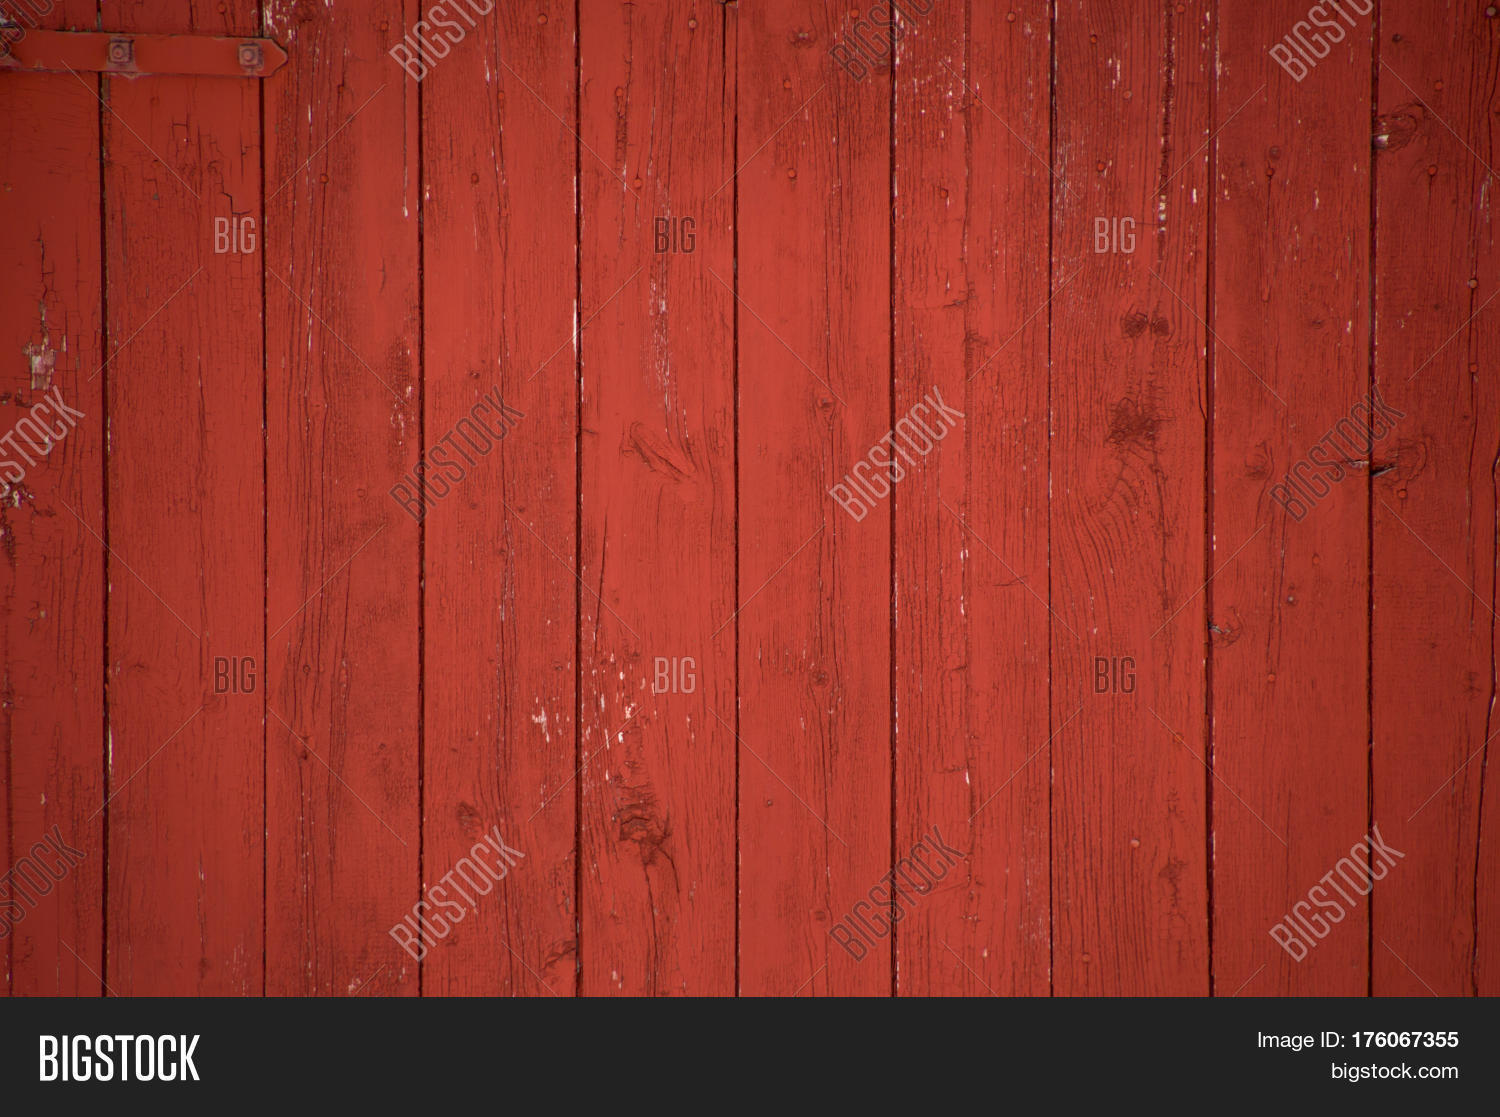 Red Barn Background vertical oxblood red barn door boards and planks background. one